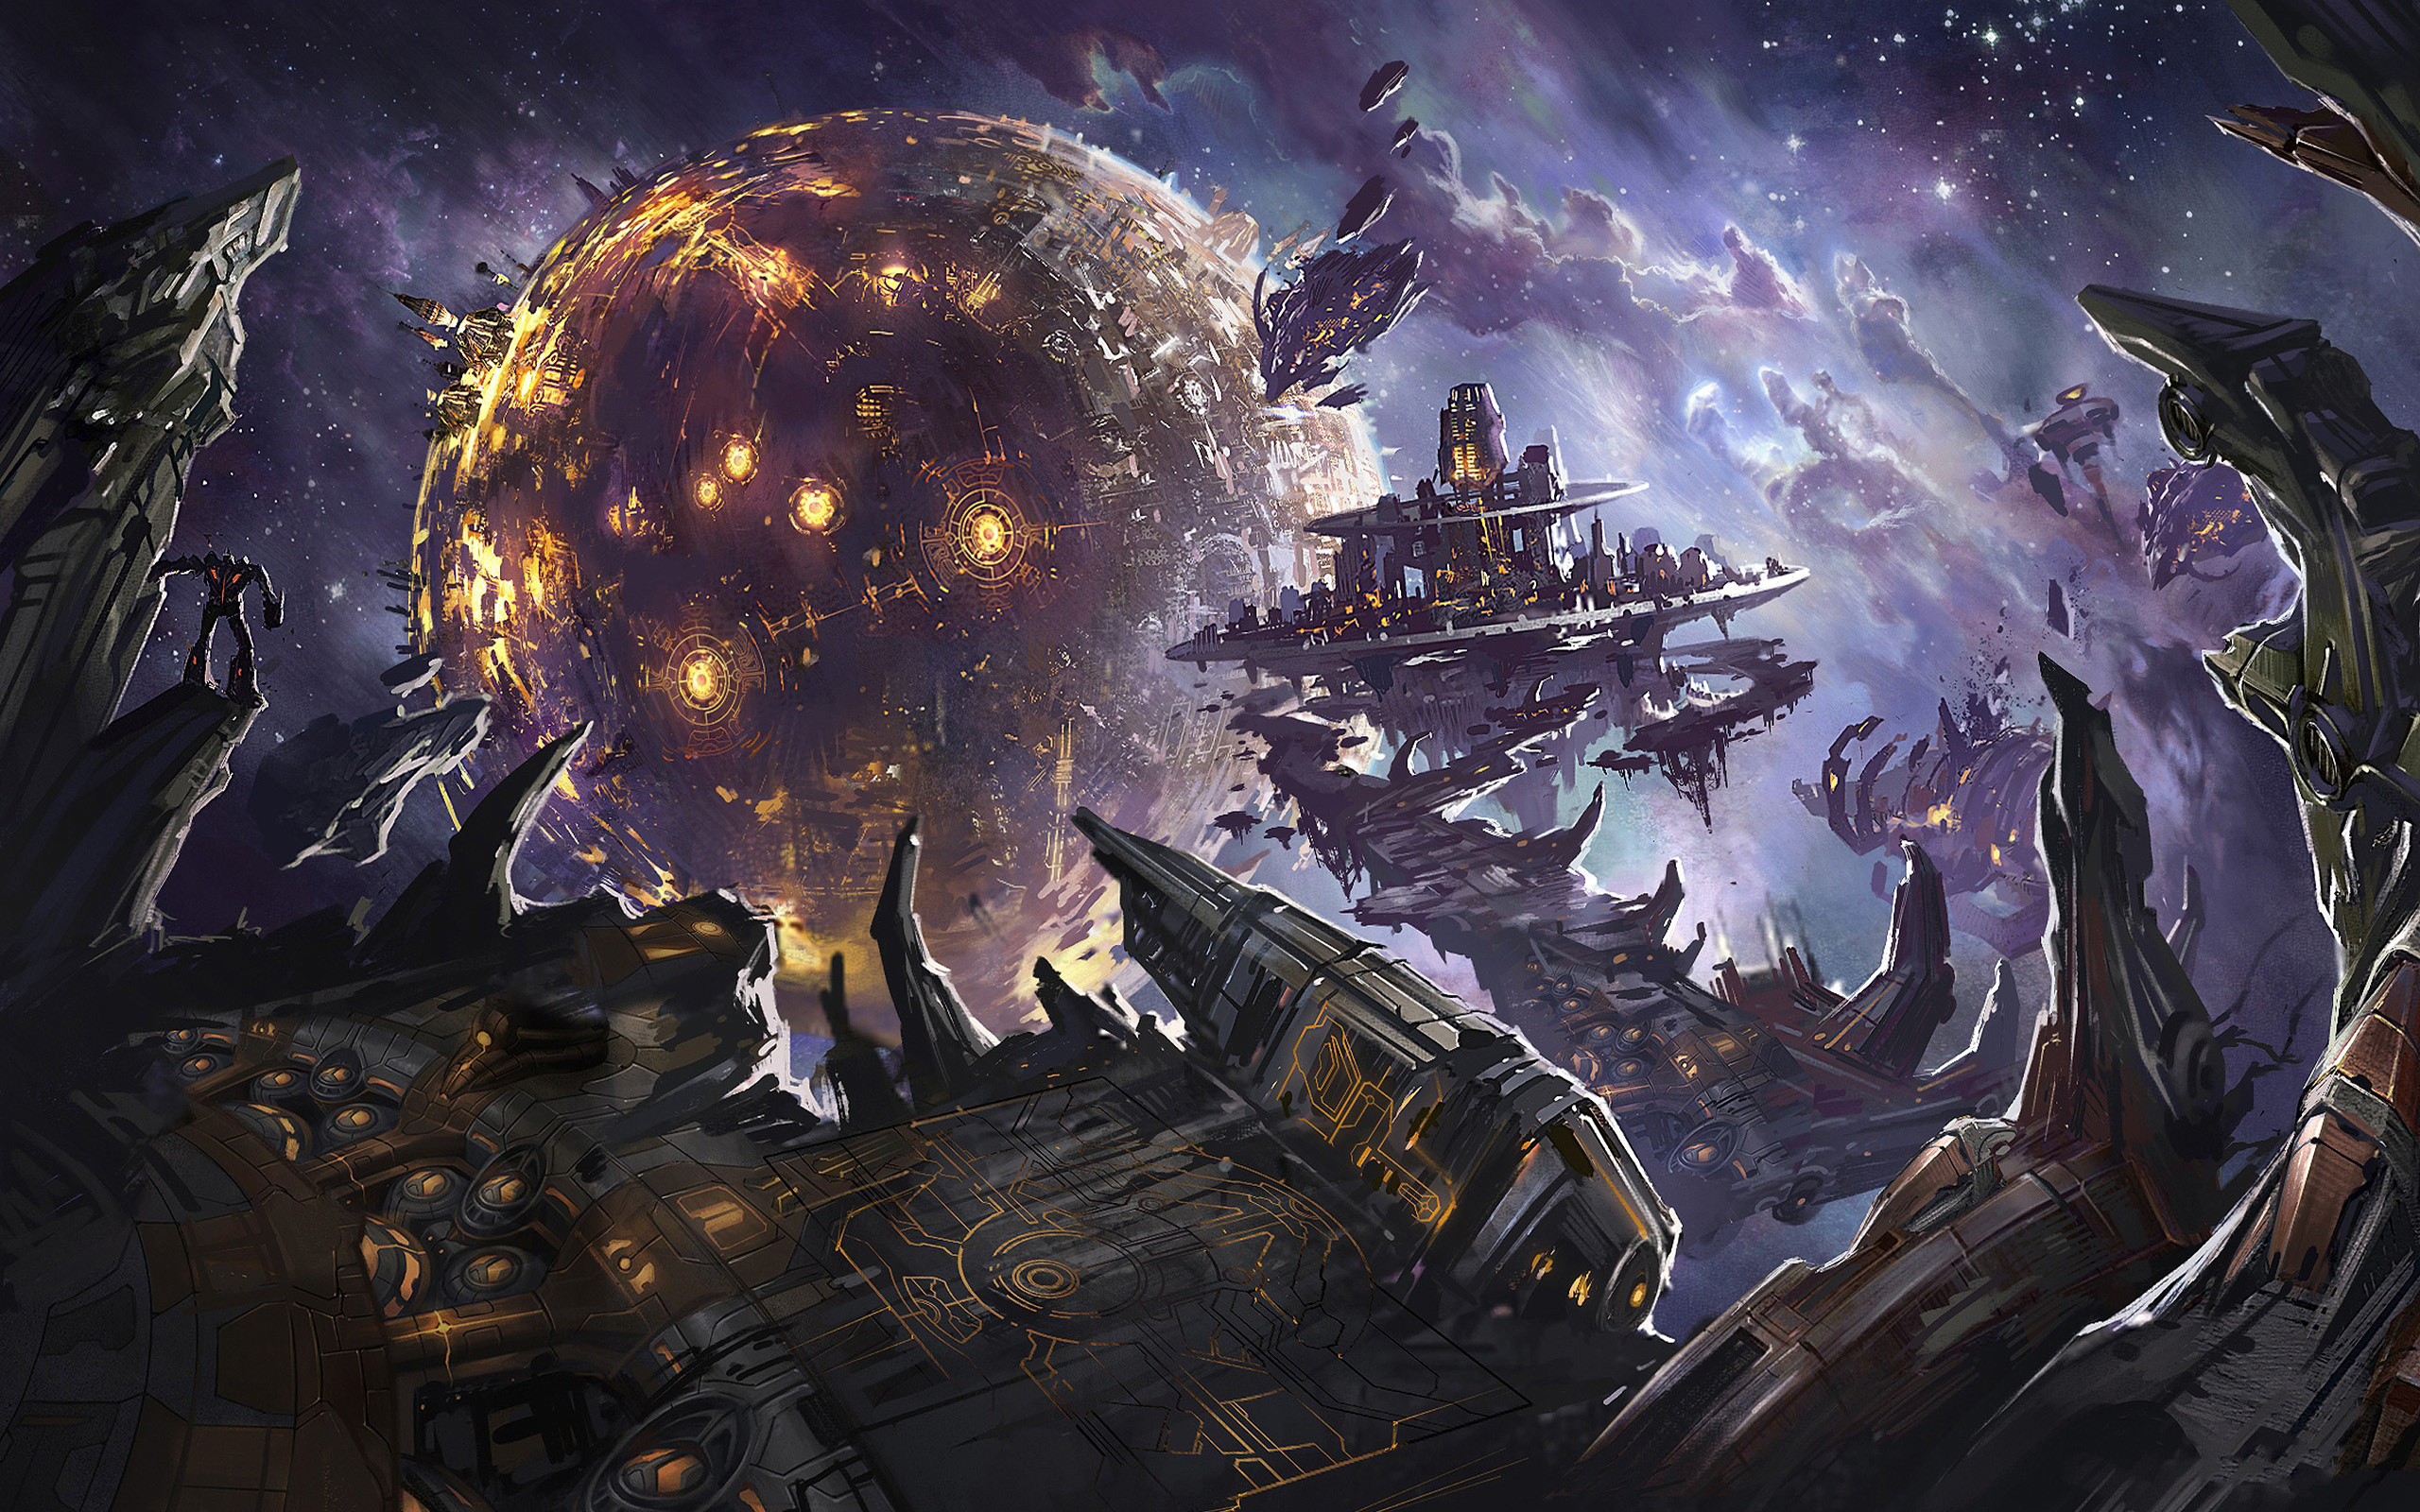 Space/Fantasy | Awesome Wallpapers